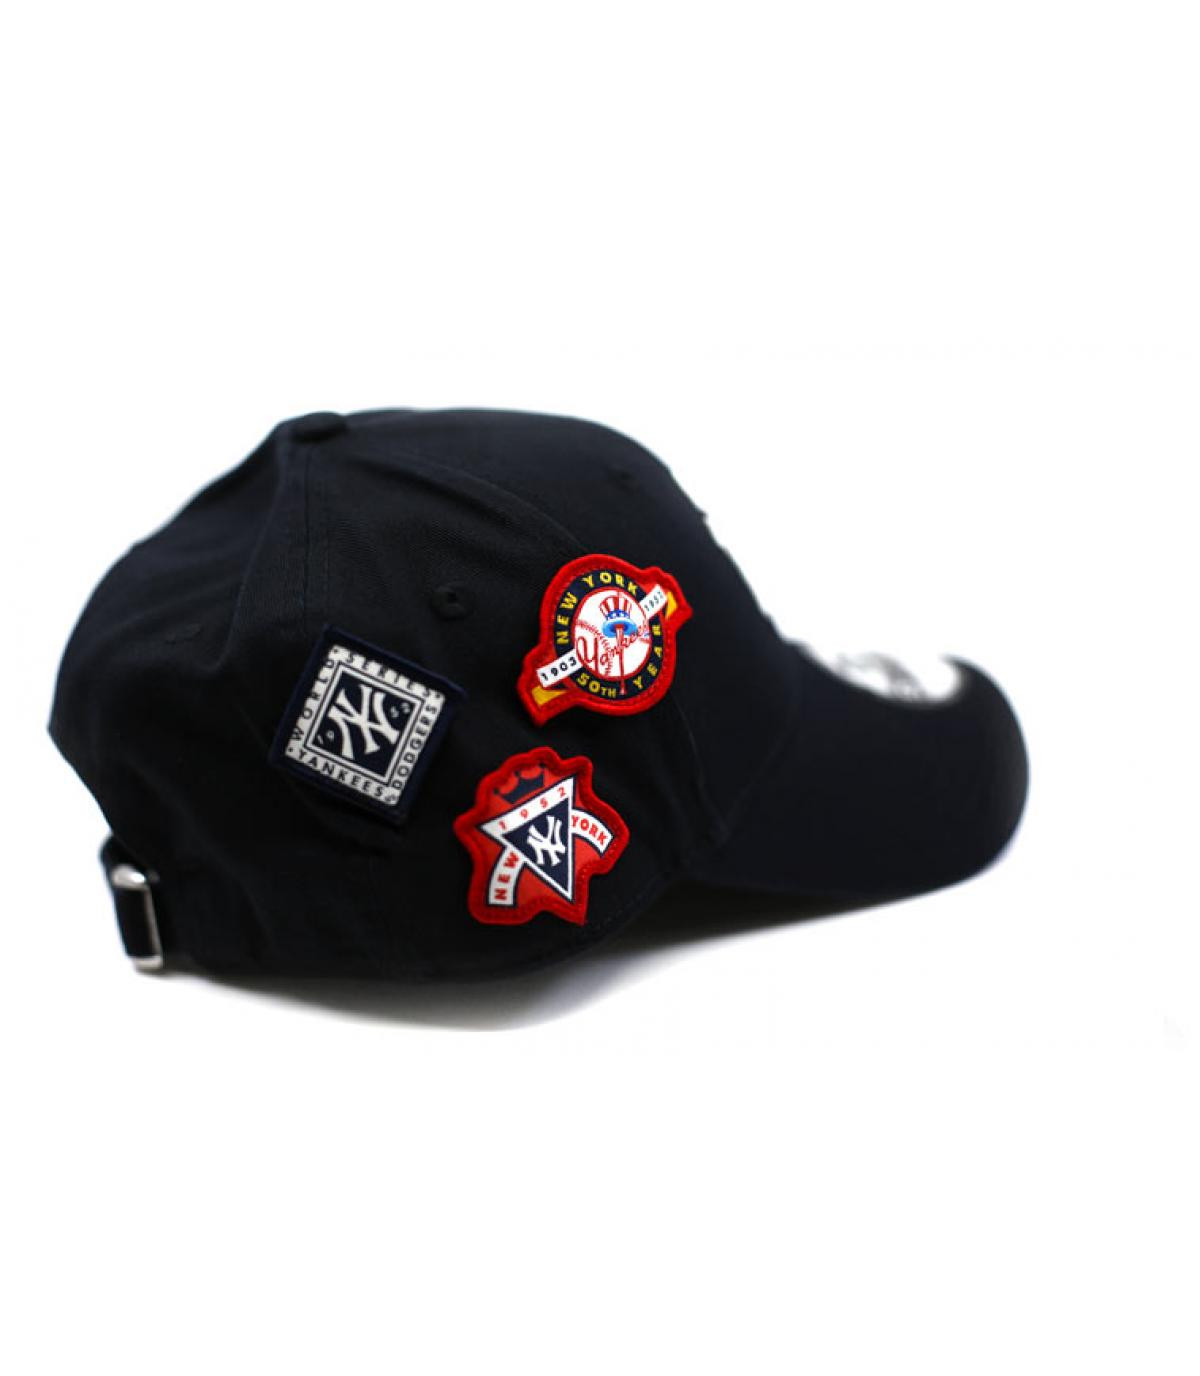 Details Cap Cooperstown Patched 9Forty NY - Abbildung 3